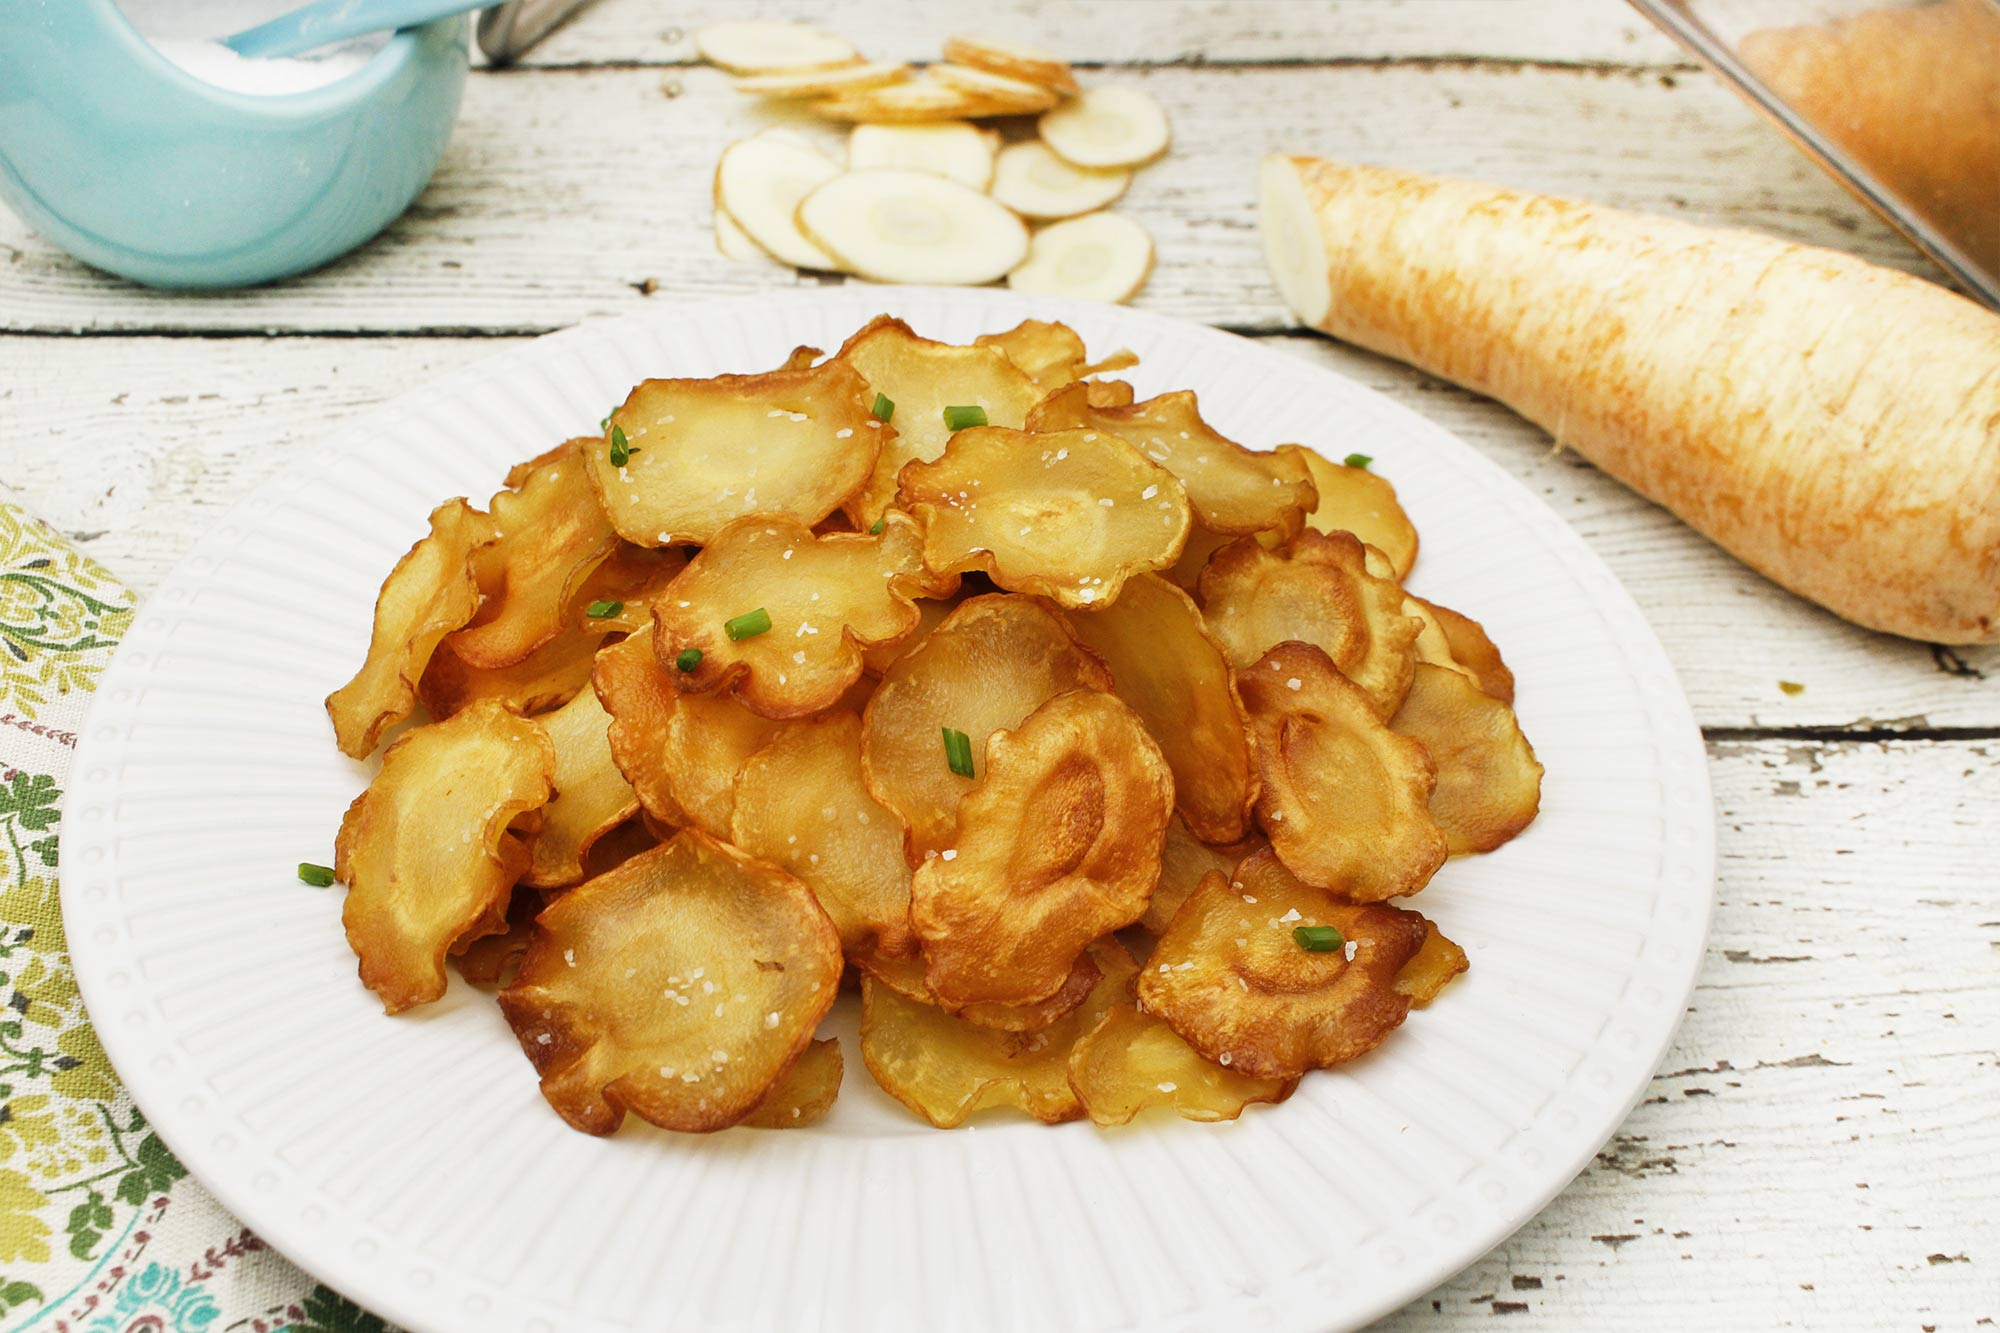 Salt and Vinegar Parsnip Chips